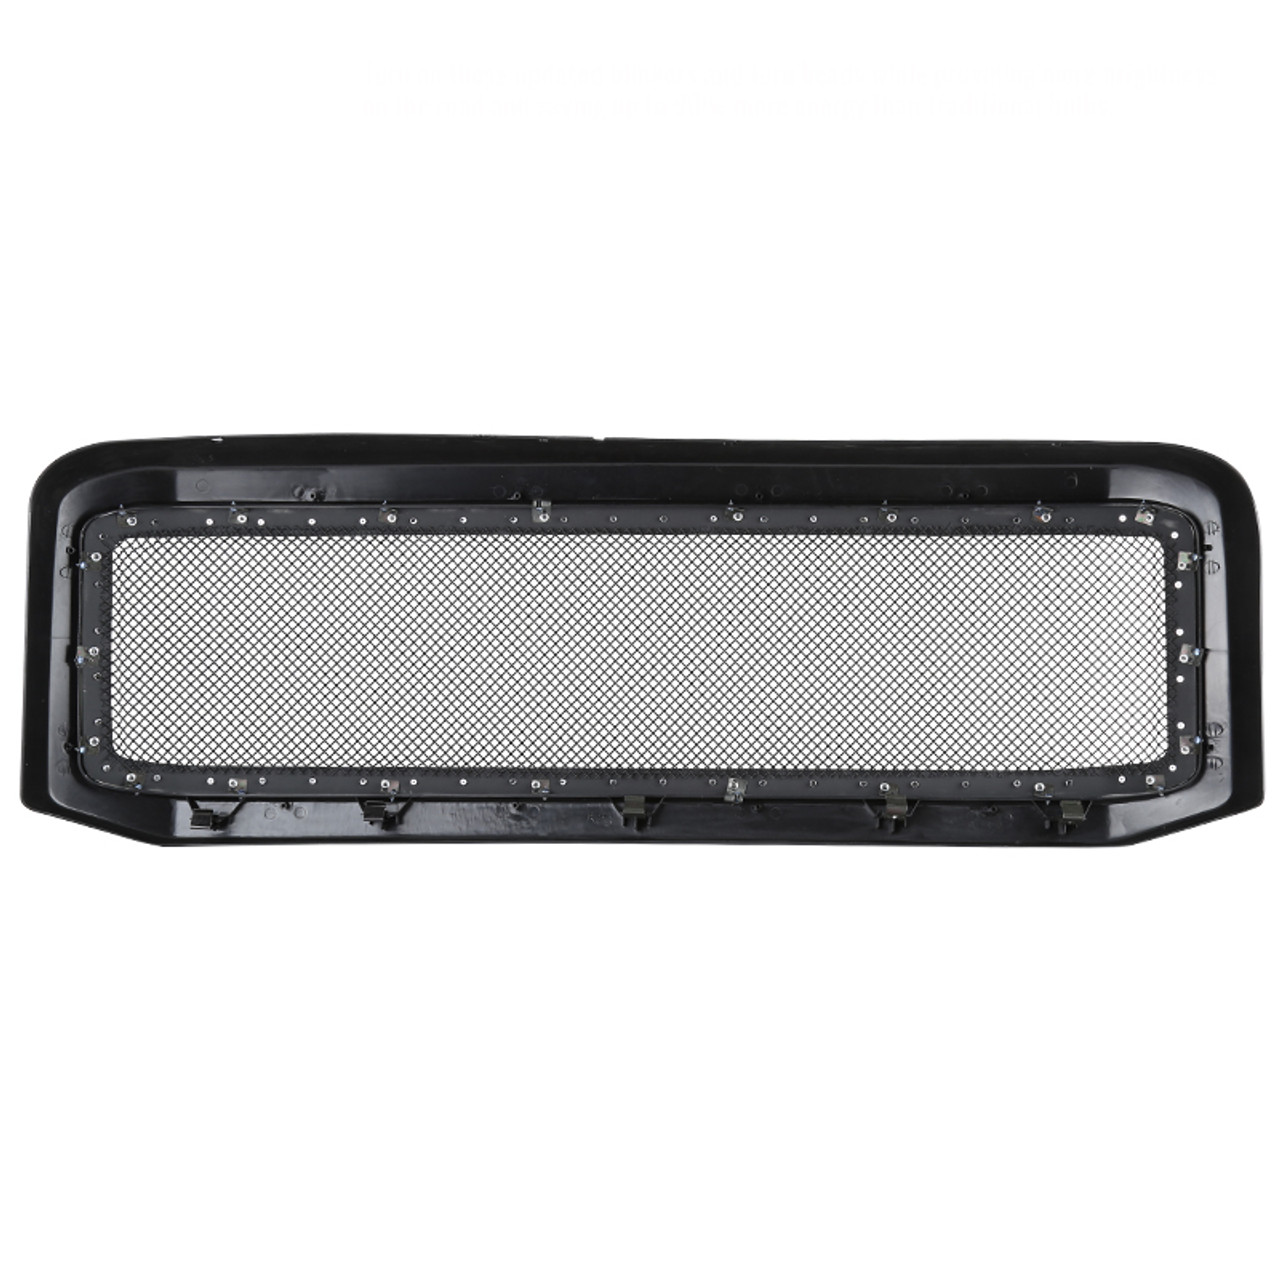 Gofavorland Front Grille Glossy Black Rivet Grill for Ford F250 F350 F450 F550 2005 2006 2007 Super Duty